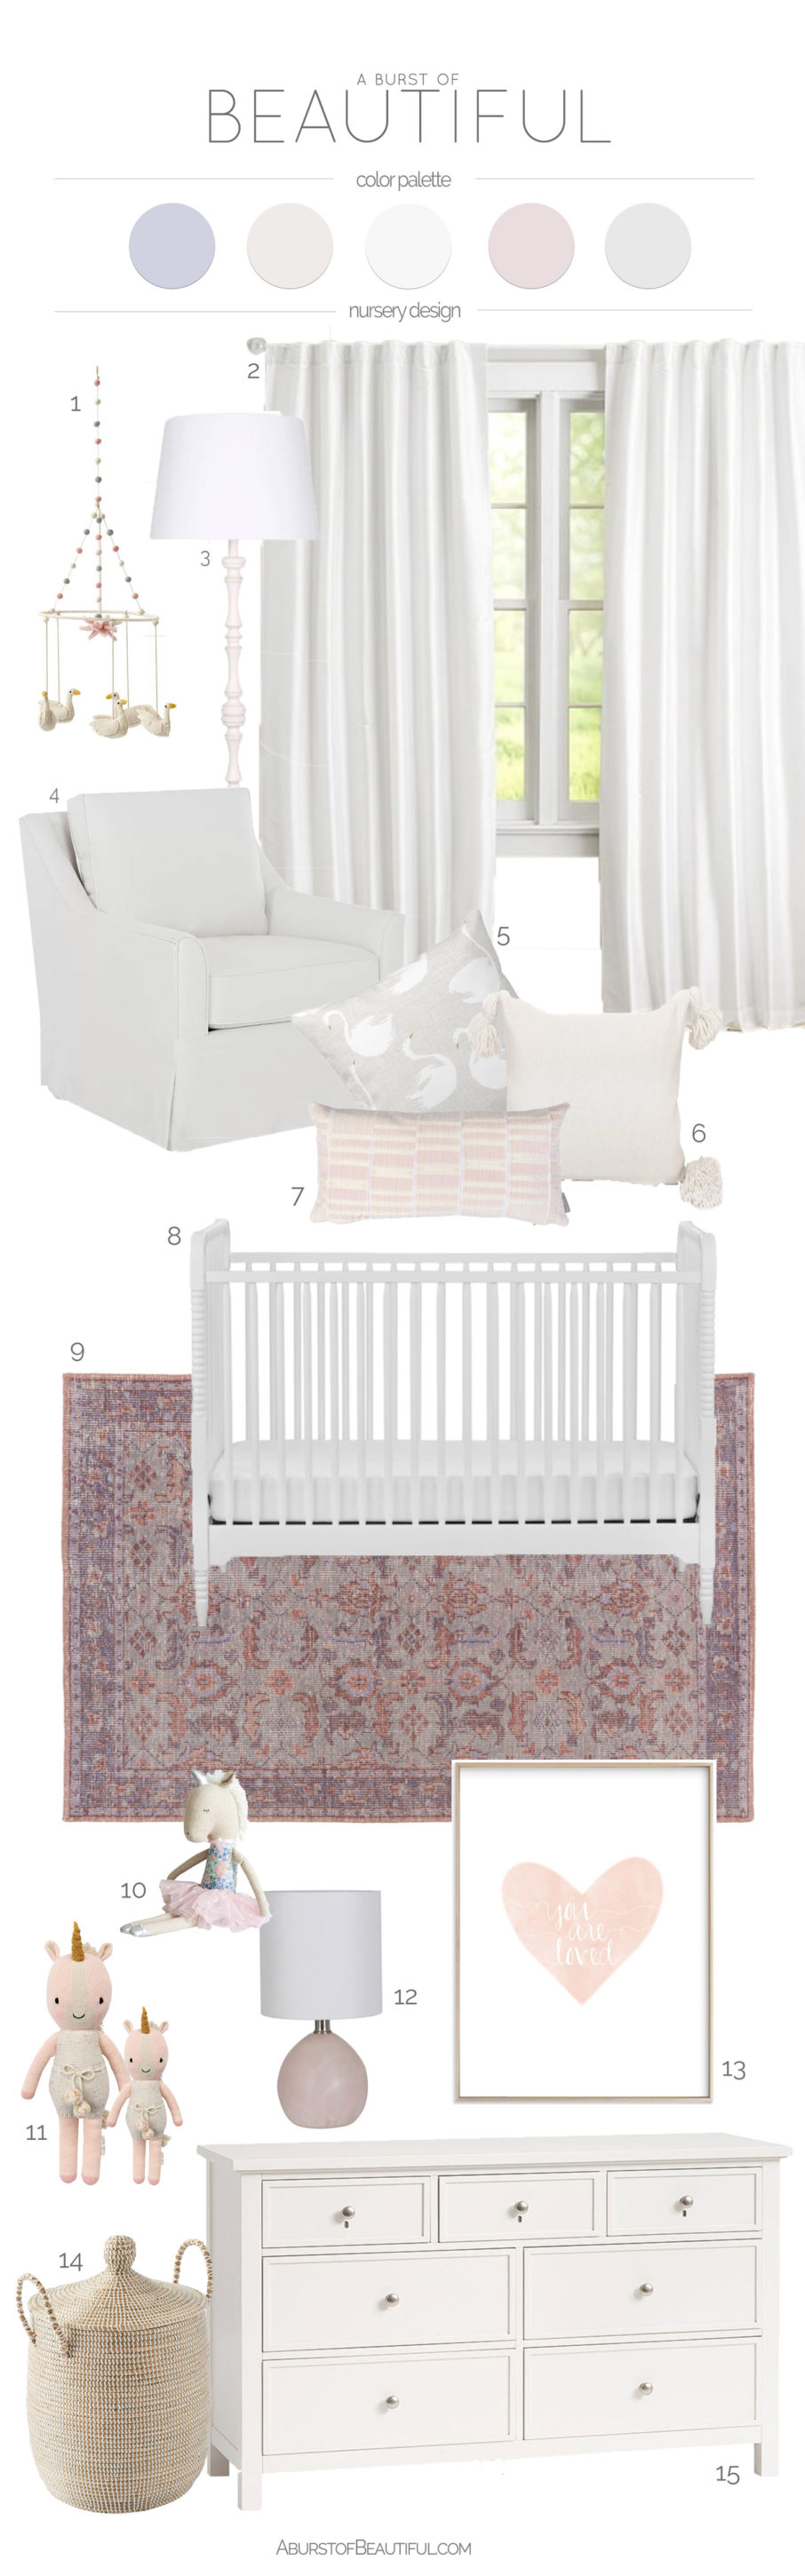 Add color and personality to a gender-neutral nursery once your little one arrives with these simple design changes